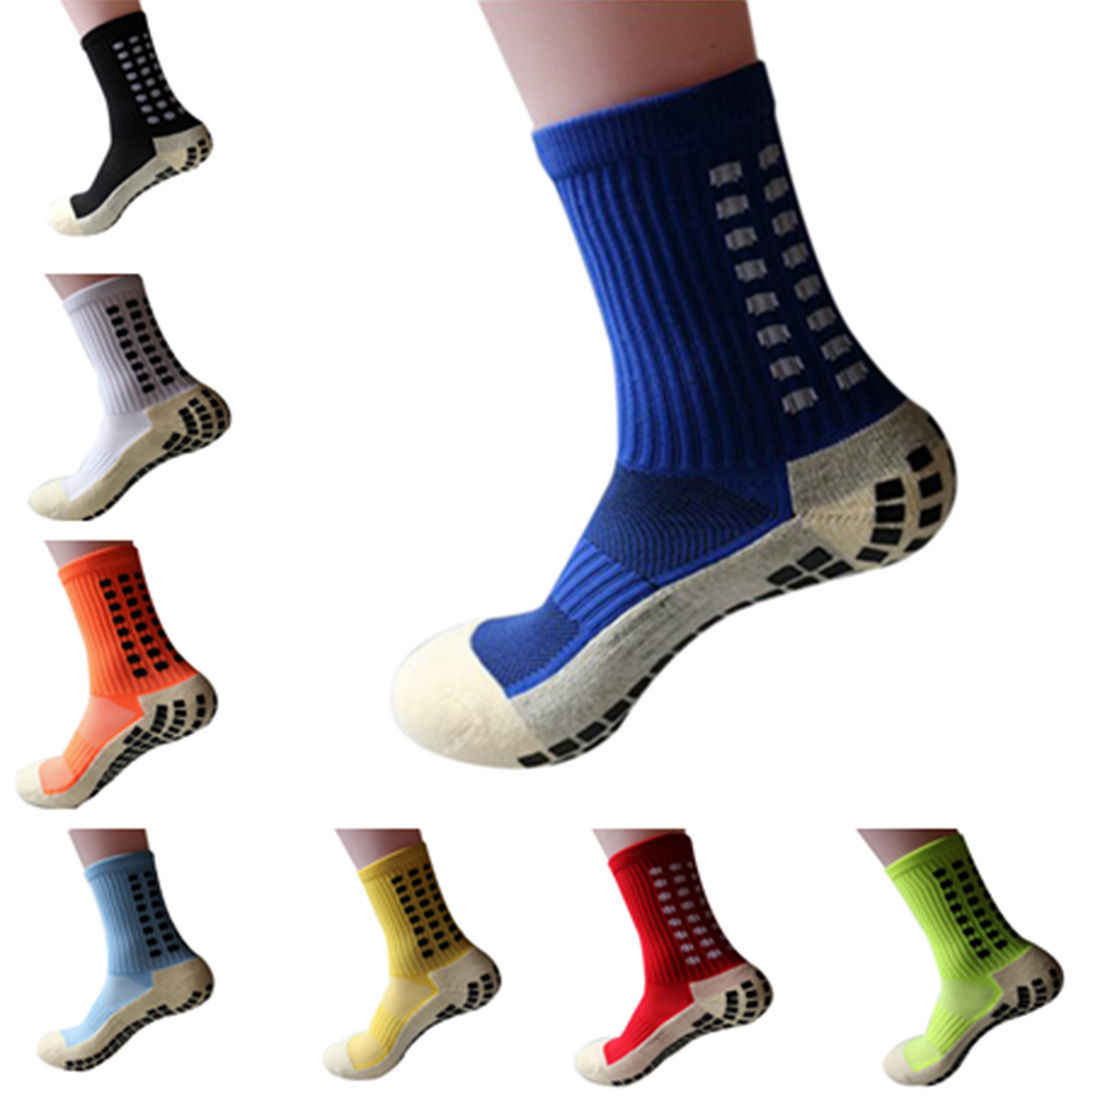 2a951b0bbc7a New Unisex Anti Slip Soccer Cotton Football Running Sport Socks Absorb Sweat